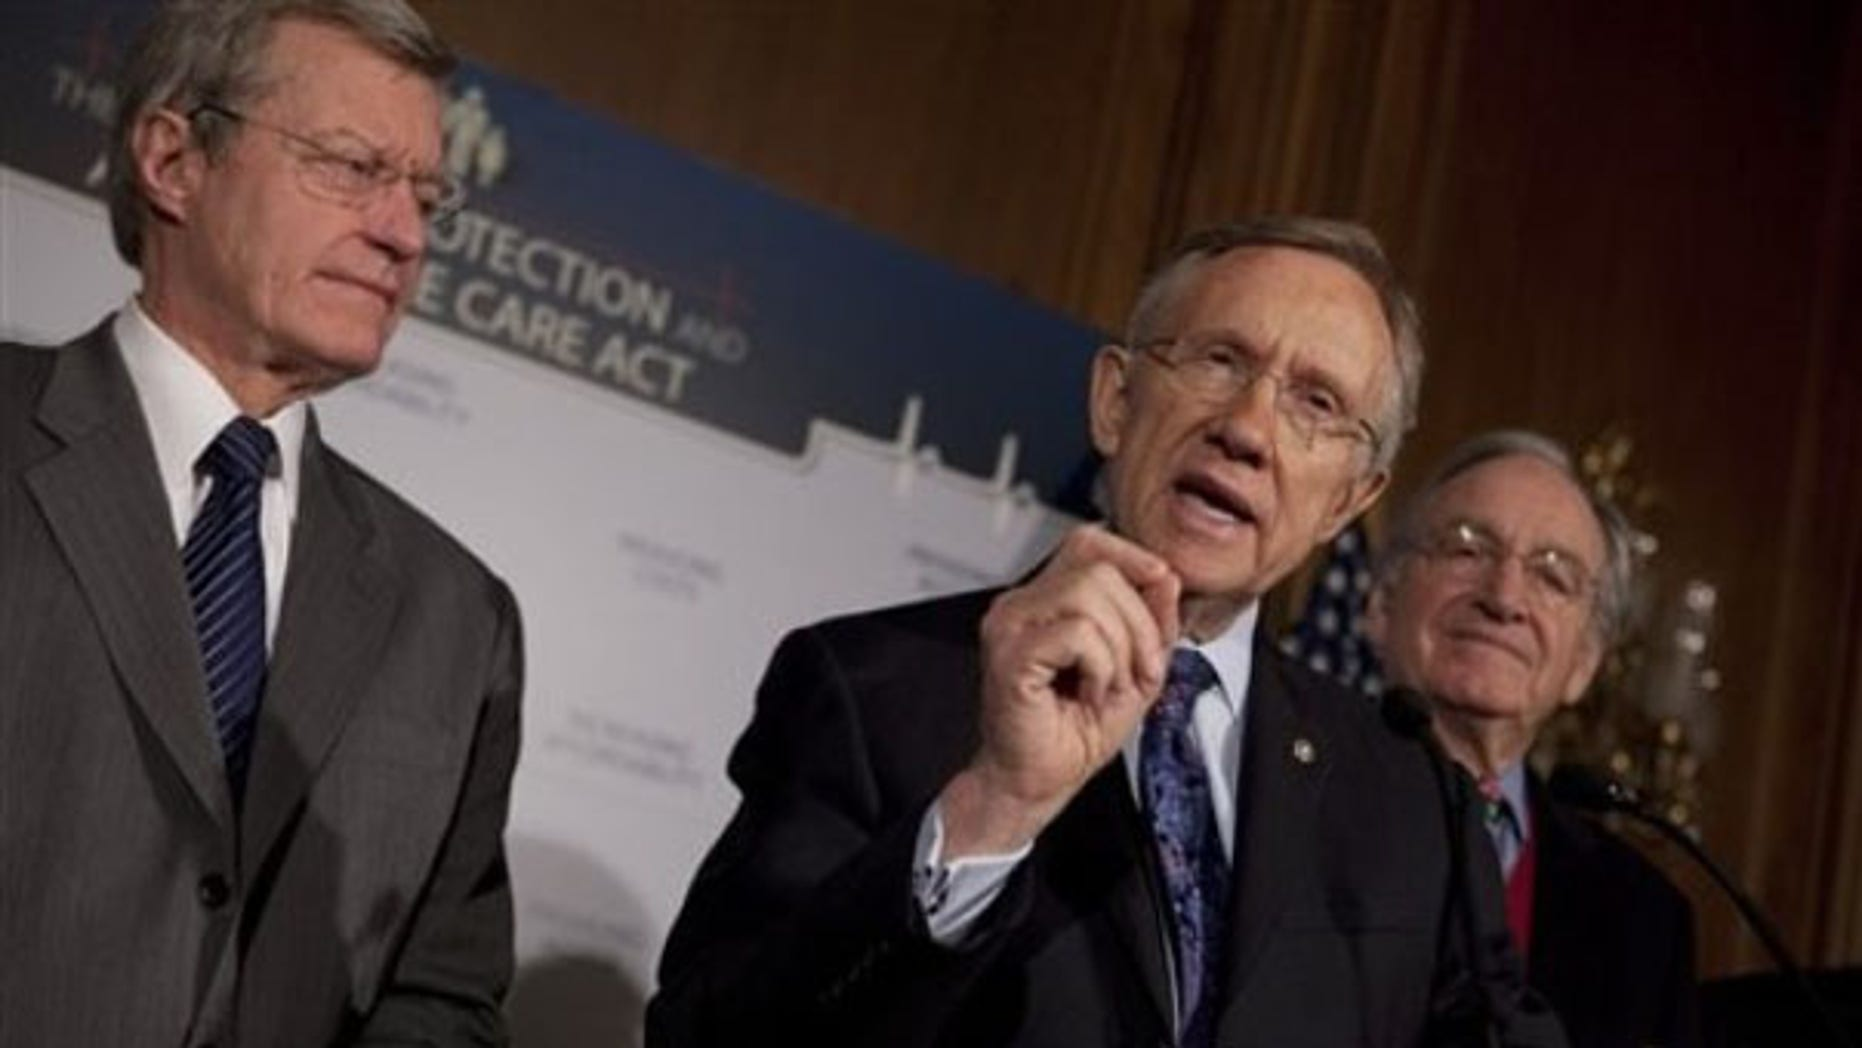 Senate Majority Leader Harry Reid, center, along with Sen. Max Baucus, left, and Sen. Tom Harkin, gestures during a health care news conference on Capitol Hill Dec. 21. (AP Photo)